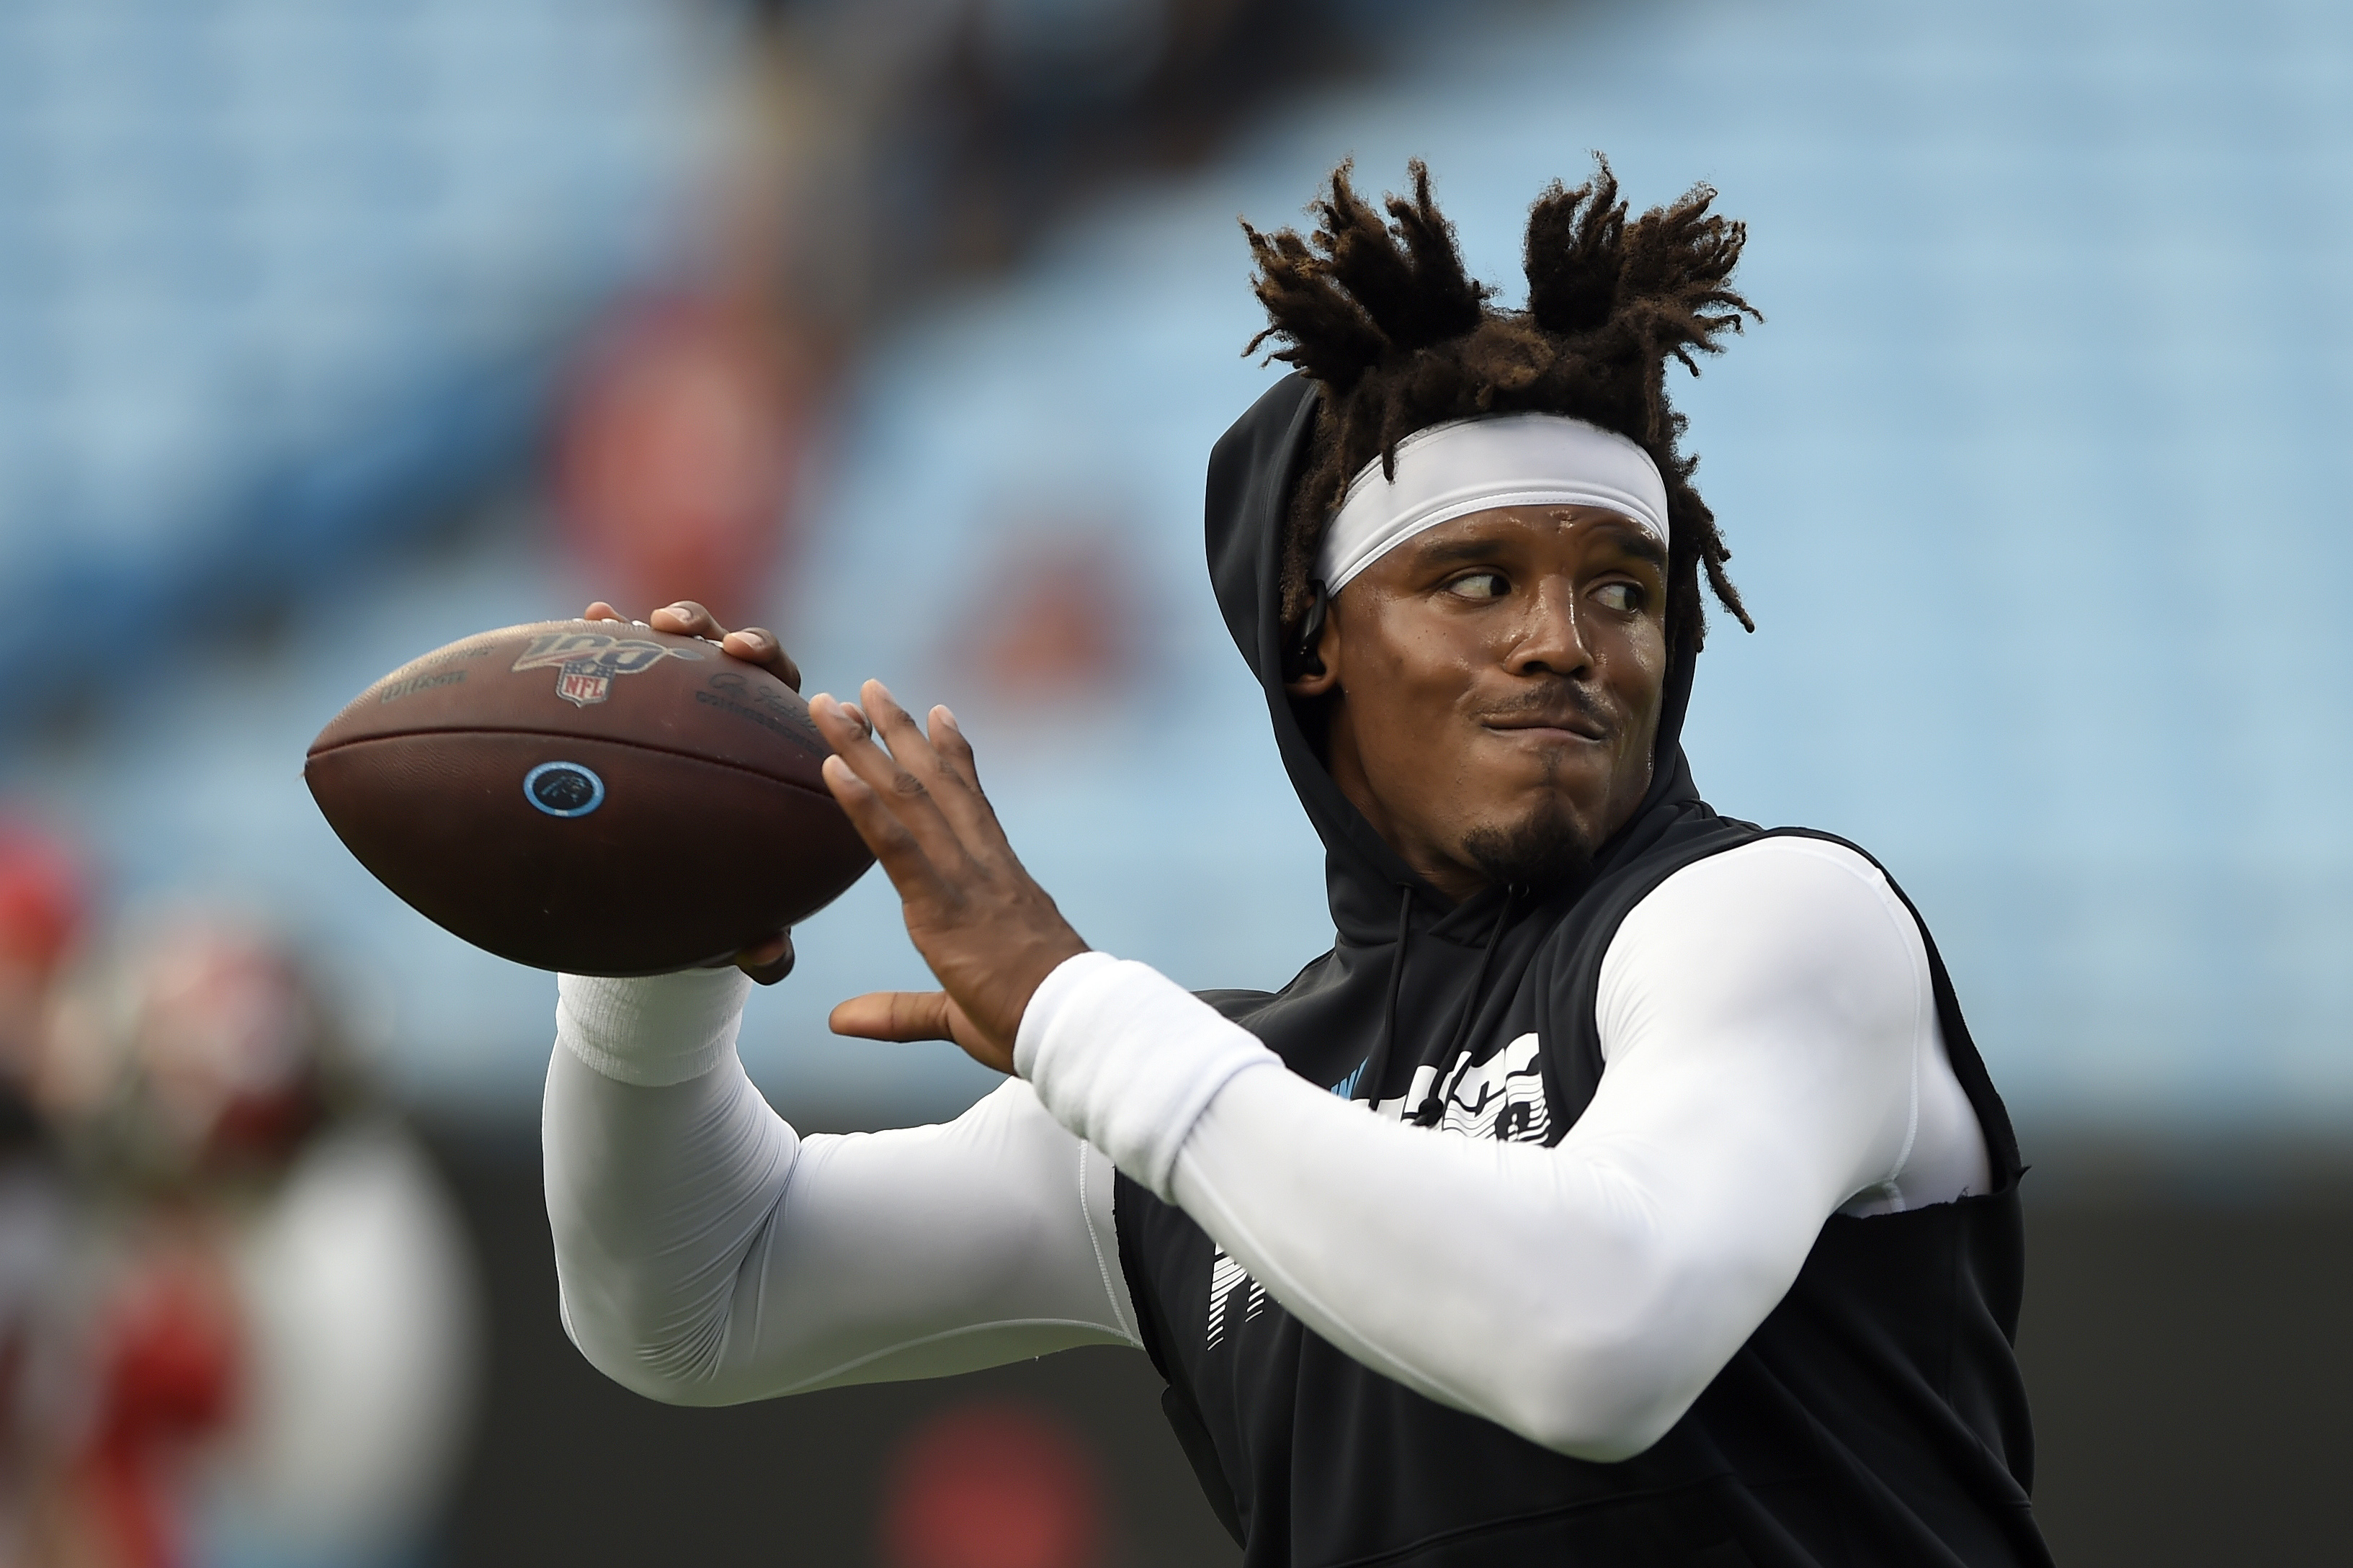 Carolina Panthers quarterback Cam Newton warms up prior to an NFL football game against the Tampa Bay Buccaneers in Charlotte, N.C., Thursday, Sept. 12, 2019.